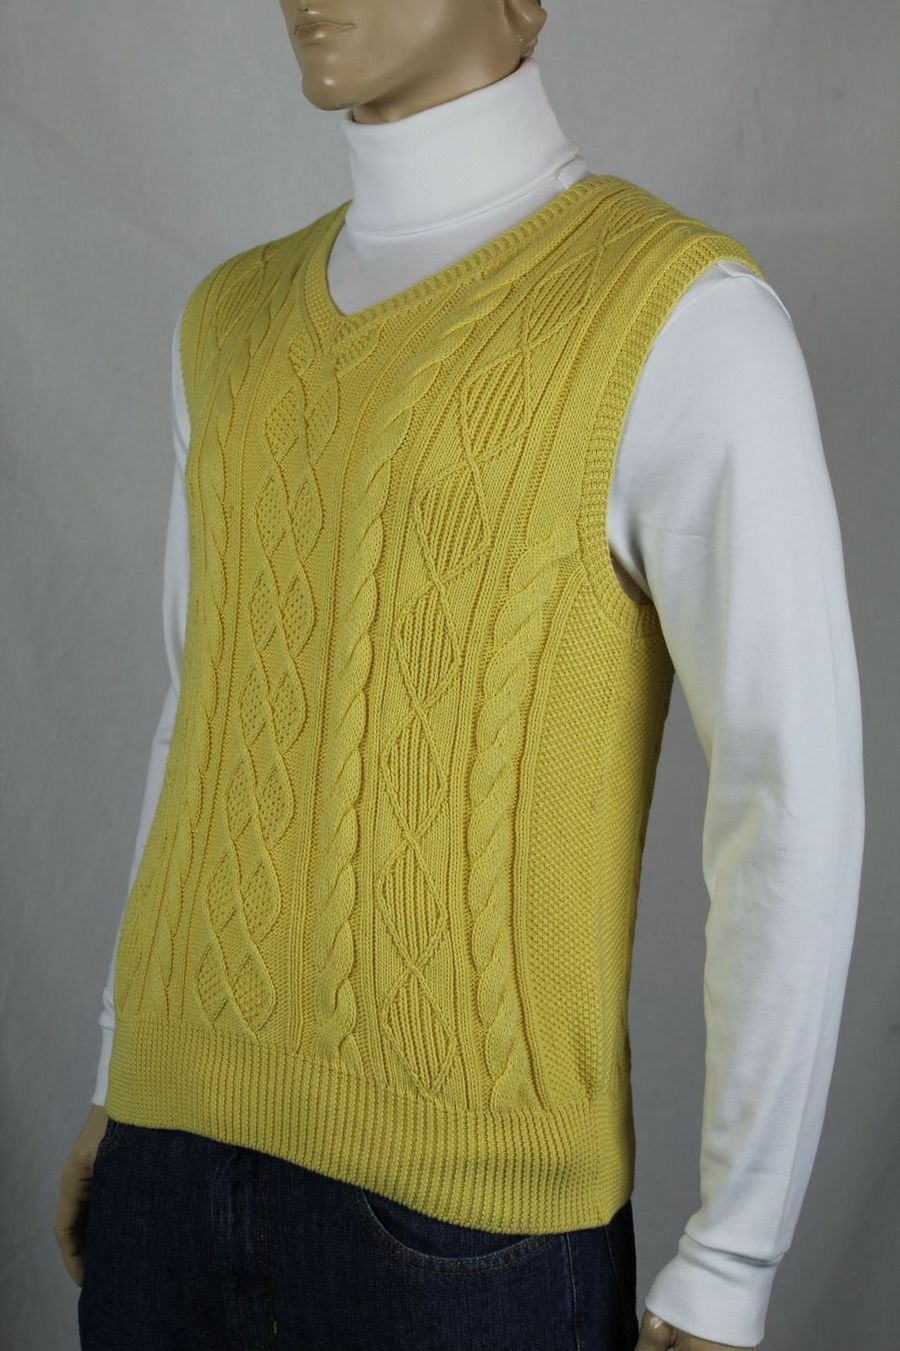 Ralph Lauren Gelb Cashmere Cable Knit Sweater Vest NWT 145